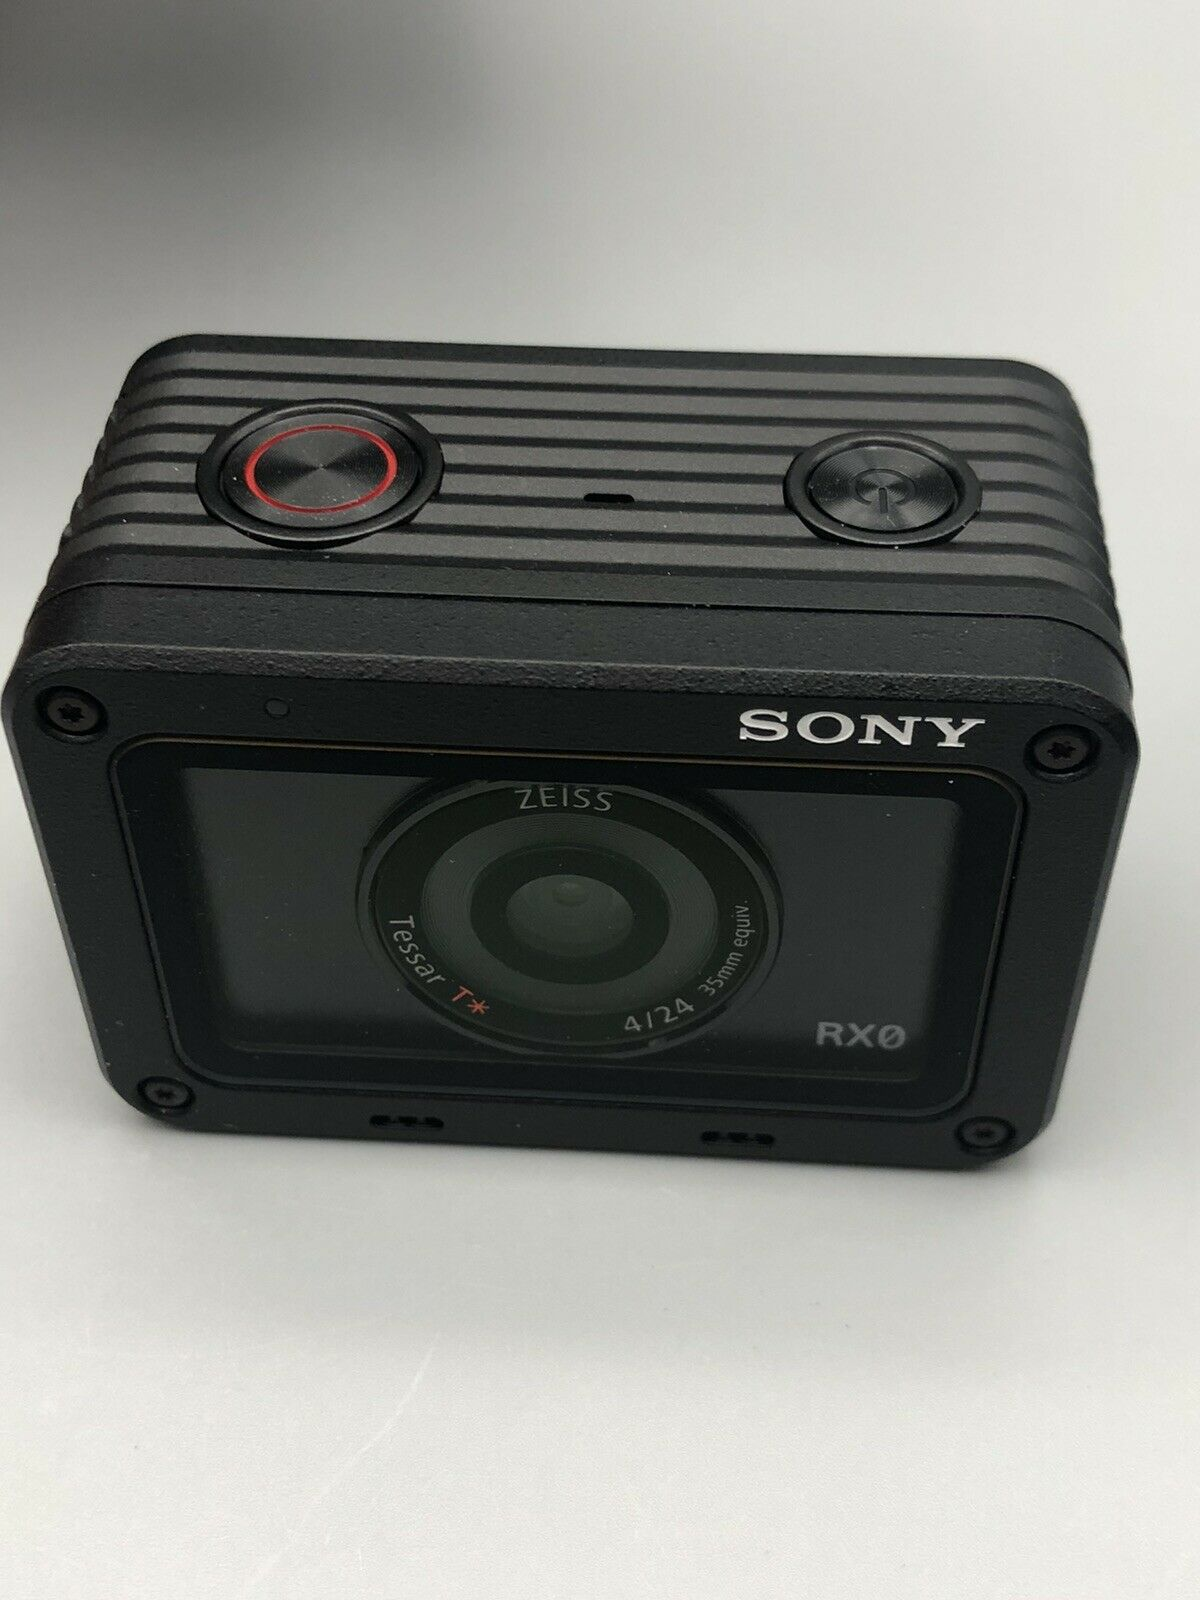 Sony RX0 Ultra-Compact Waterproof/Shockproof Camera